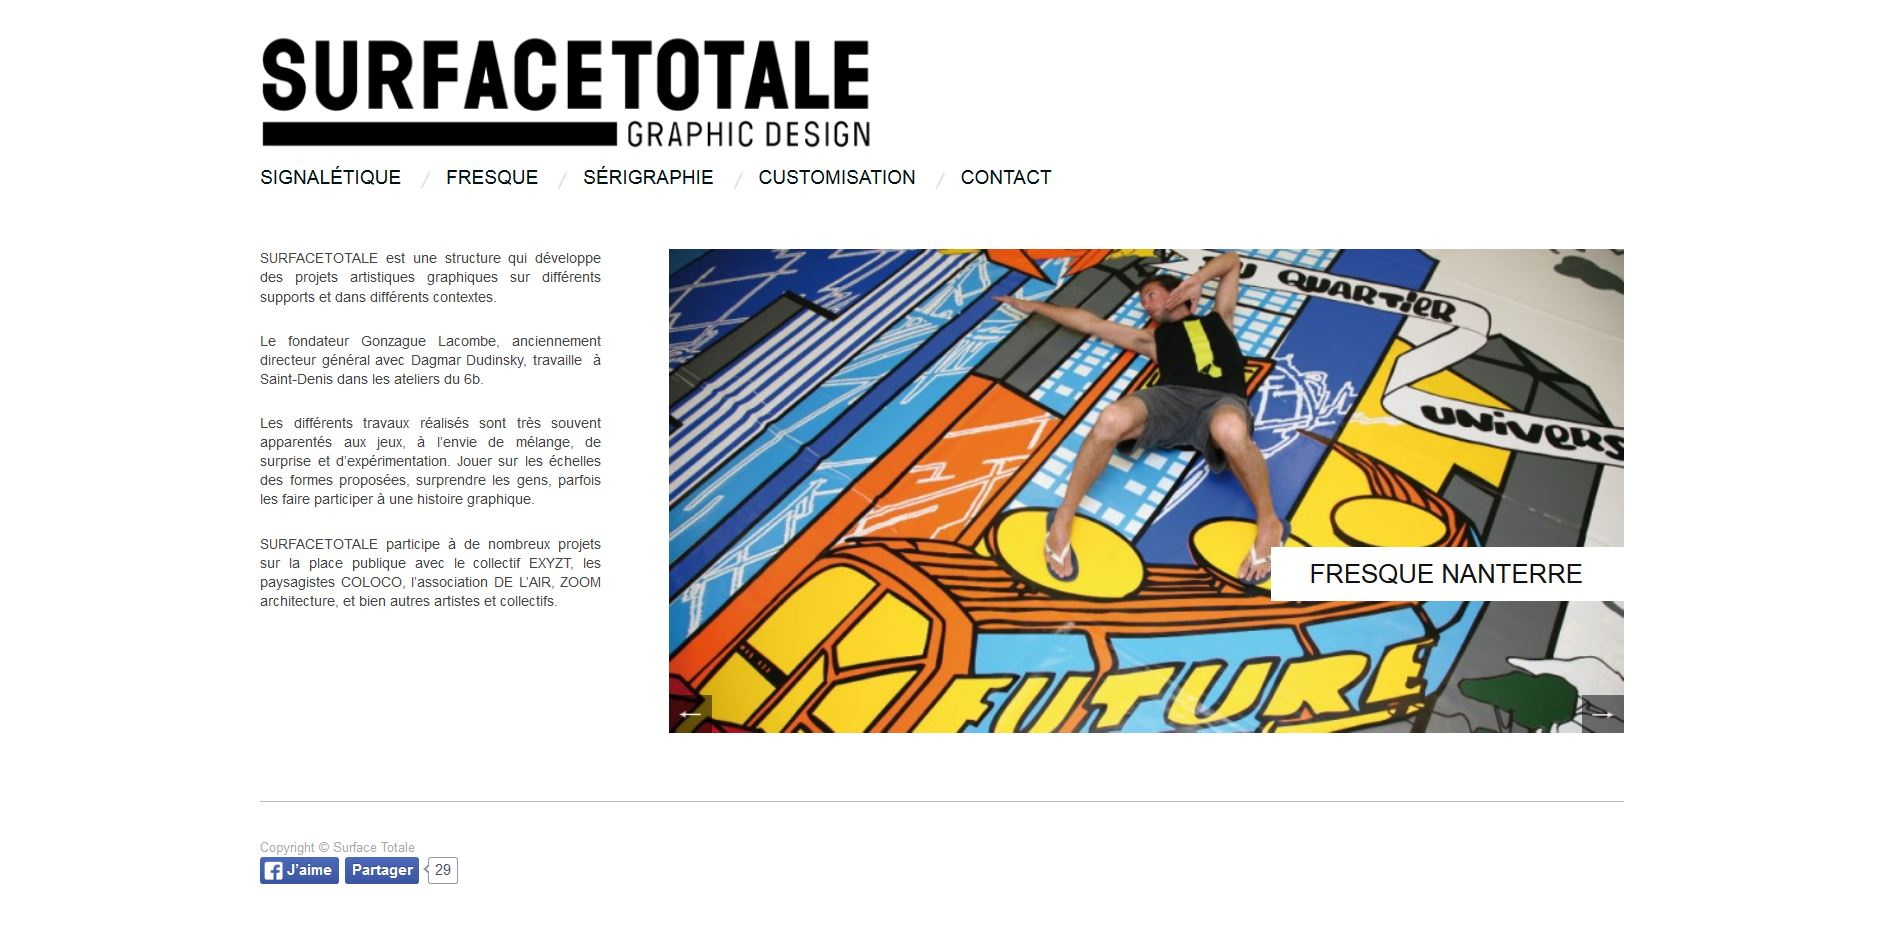 surfacetotale_accueil